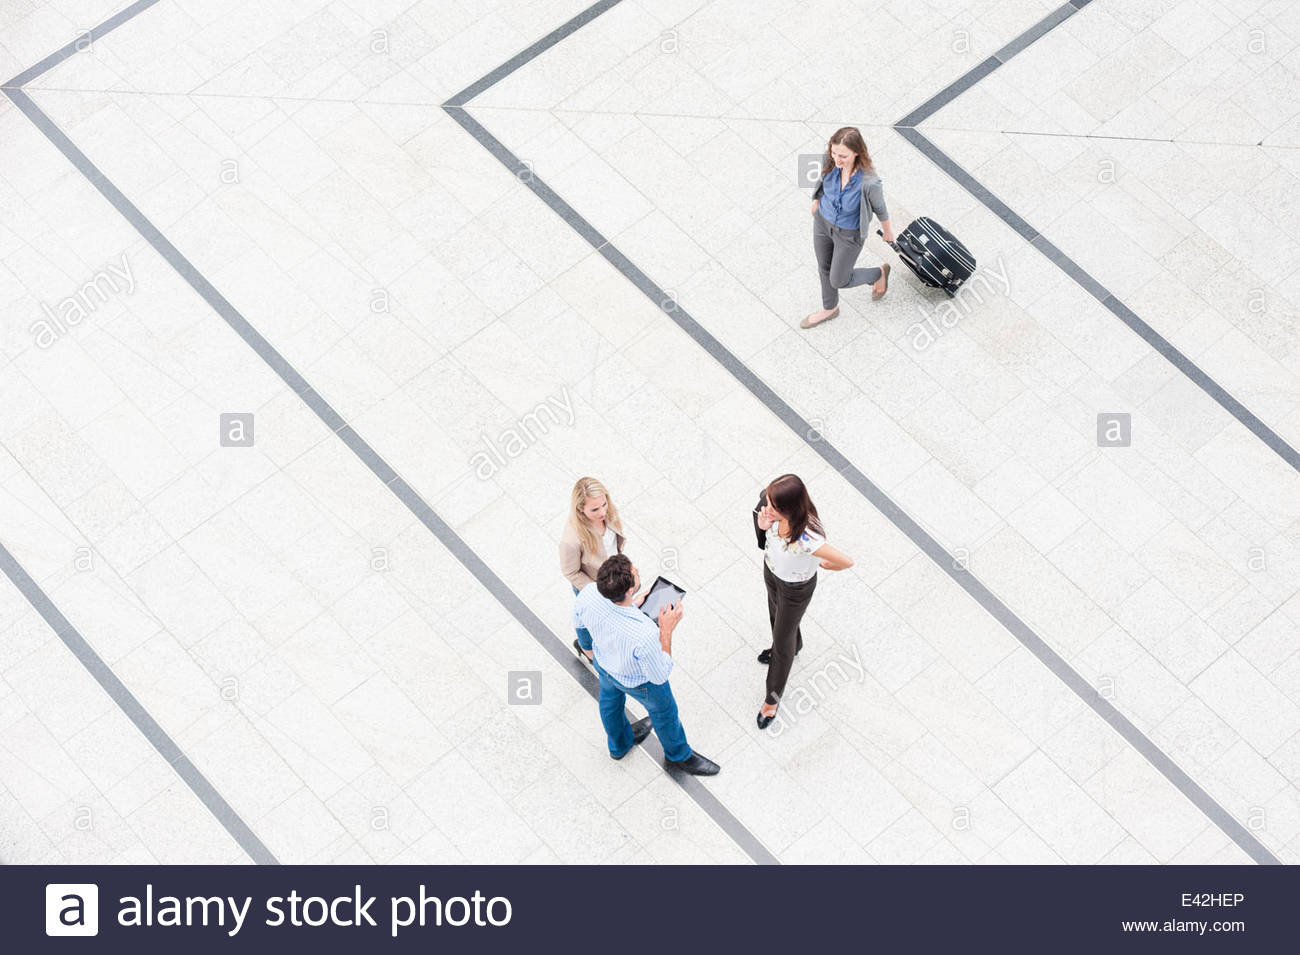 Four people in concourse, high angle - Stock Image